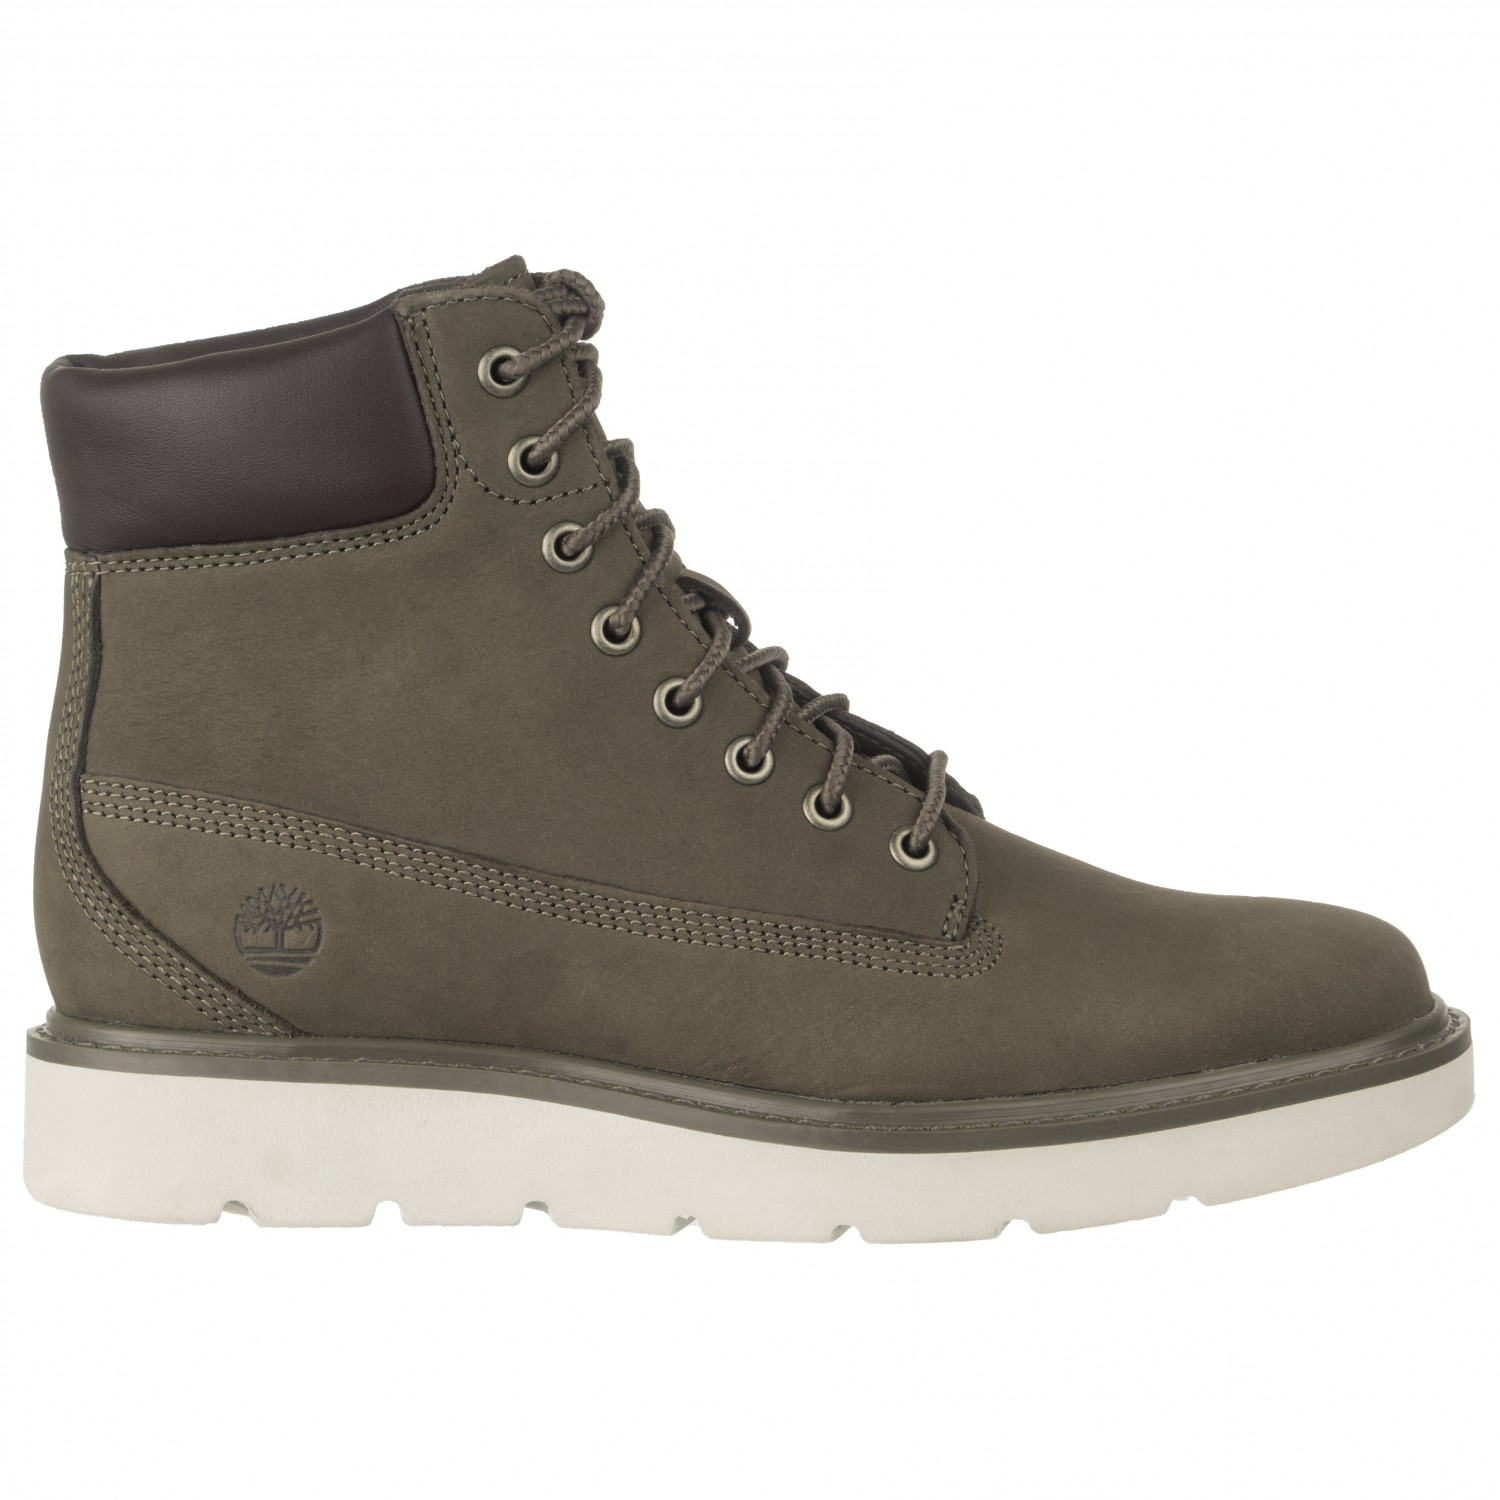 8170df6978 Timberland Kenniston 6Inch Lace Up - Sneakers Women's   Free UK ...